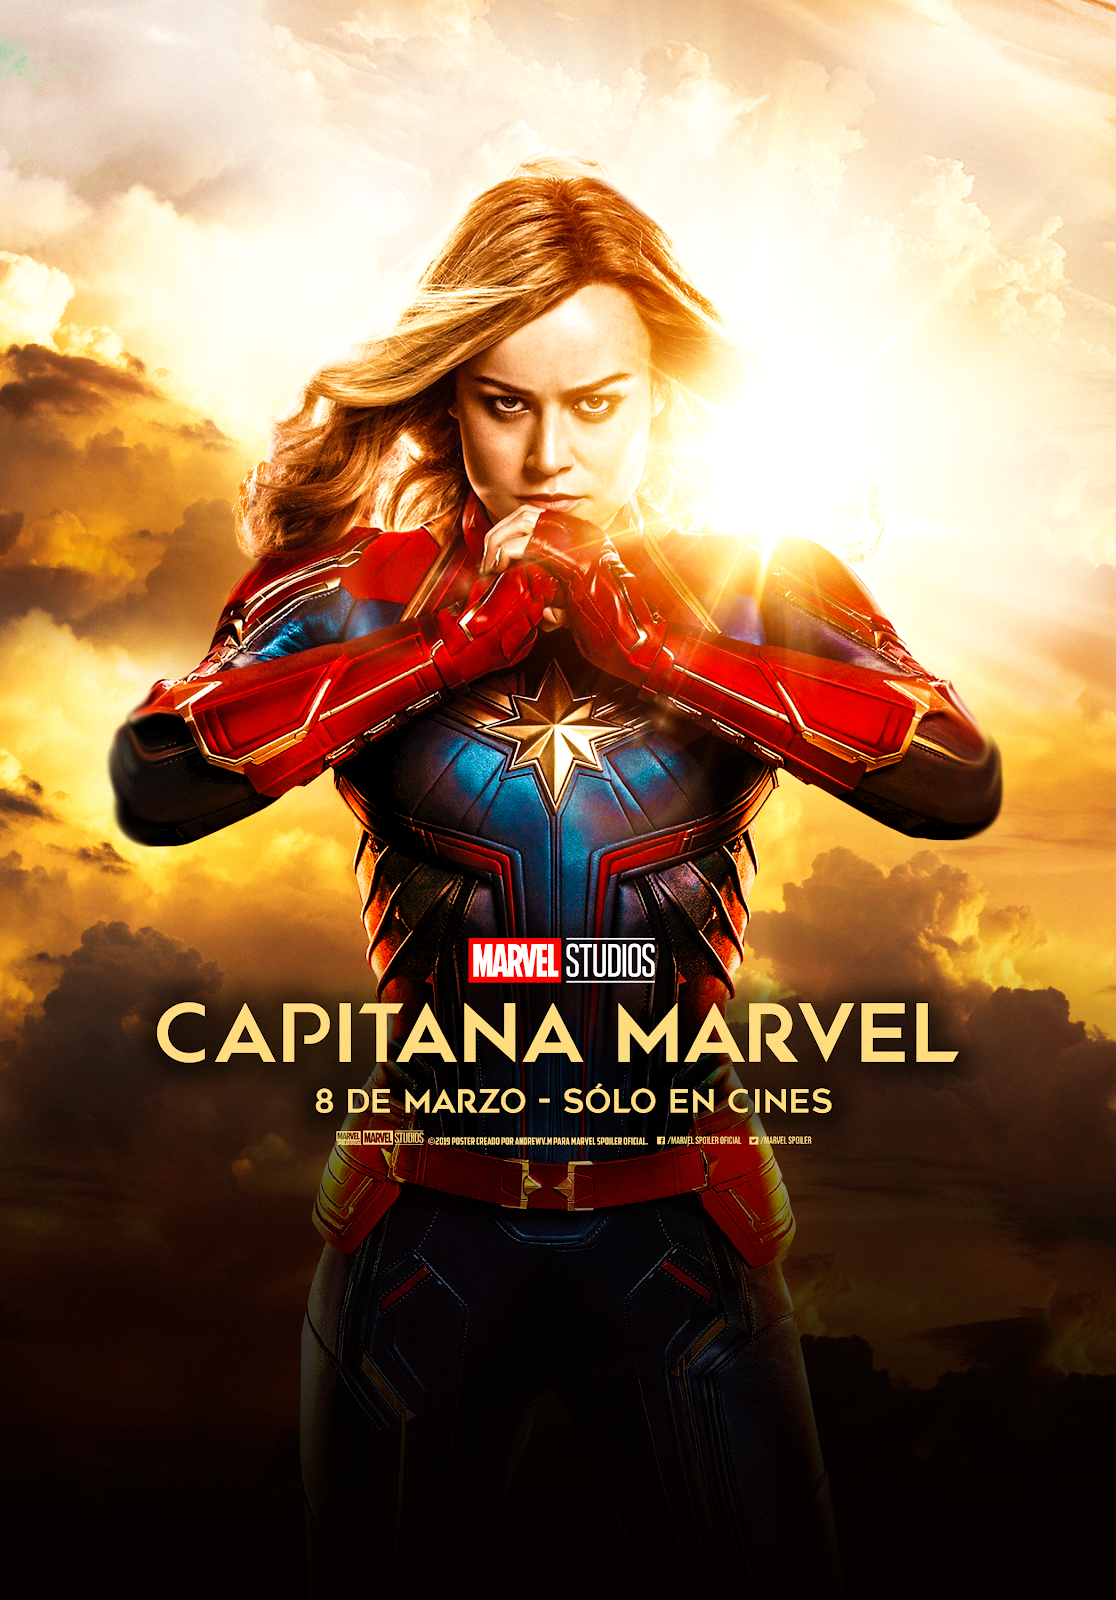 Descargar Capitana Marvel 2019 Hd Unlink